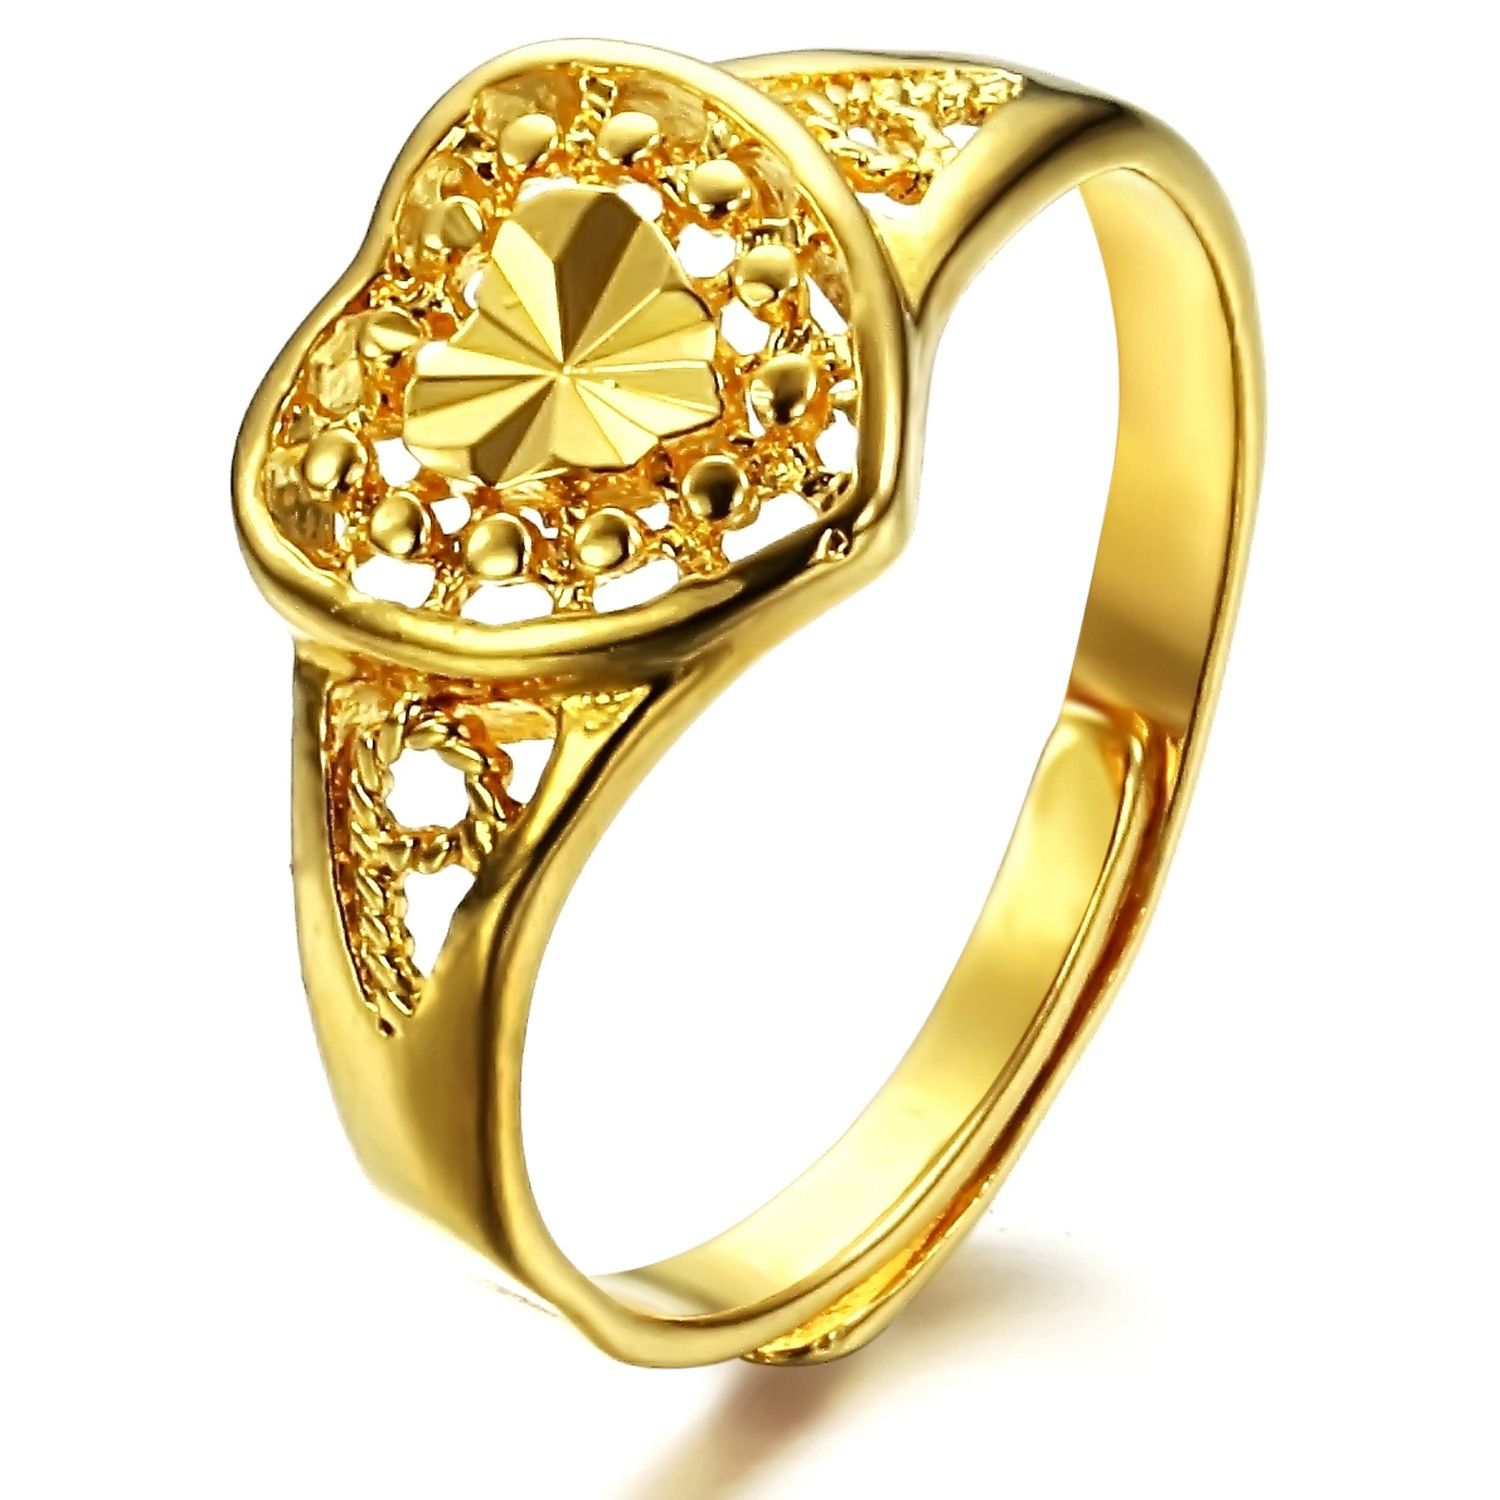 gold rings | Heart Rings | Pinterest | Gold rings, Ring designs ...